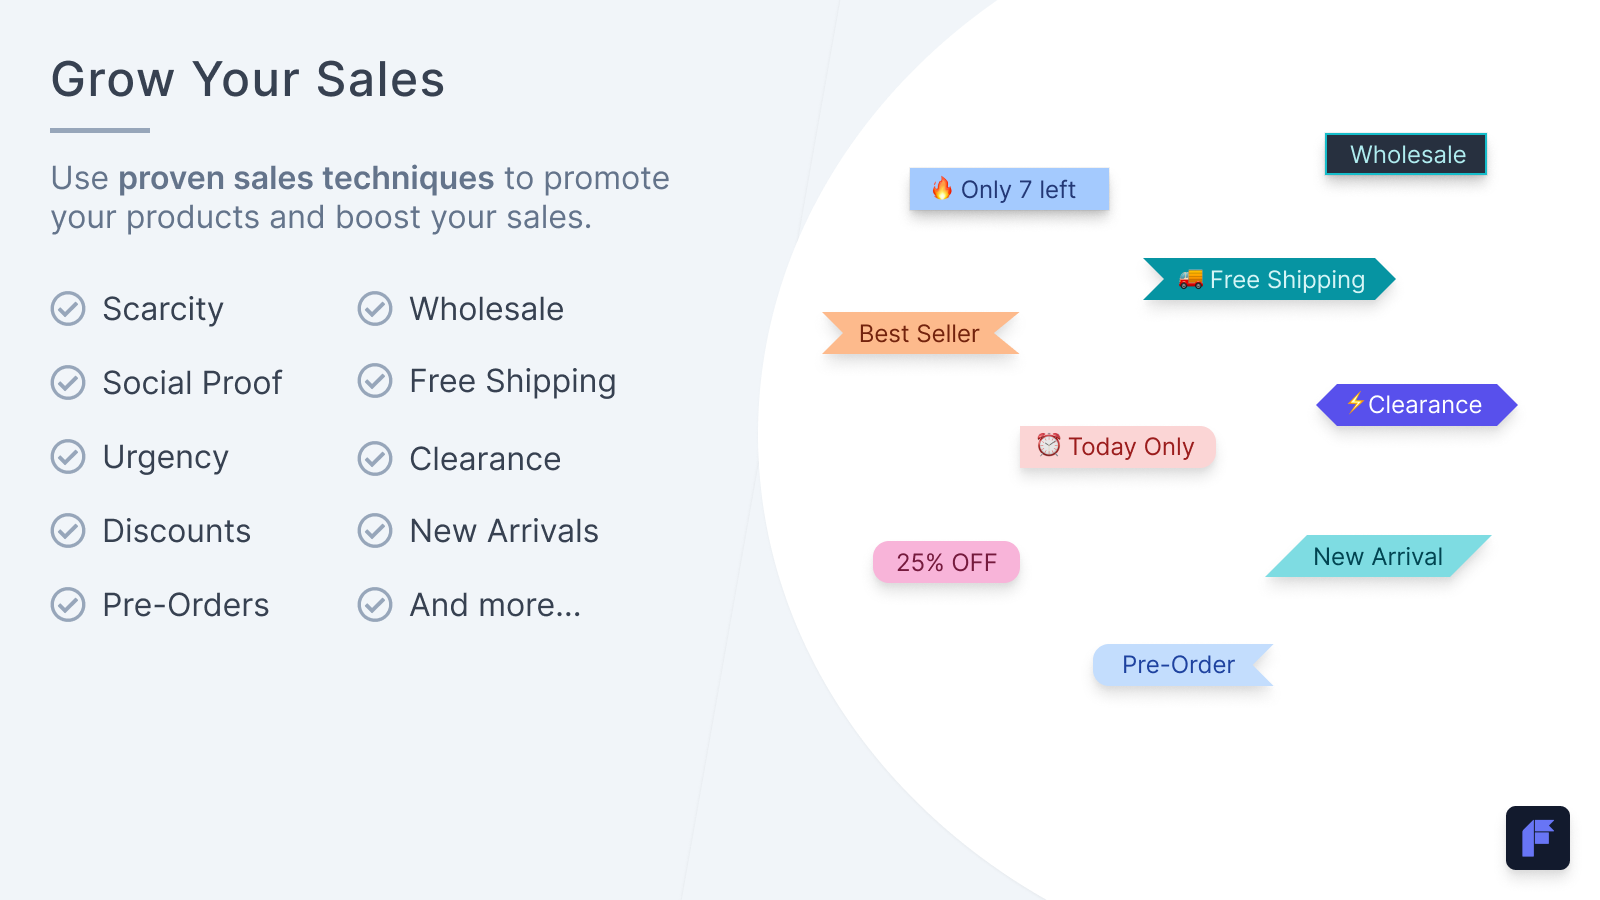 Grow your store sales with proven sales techniques